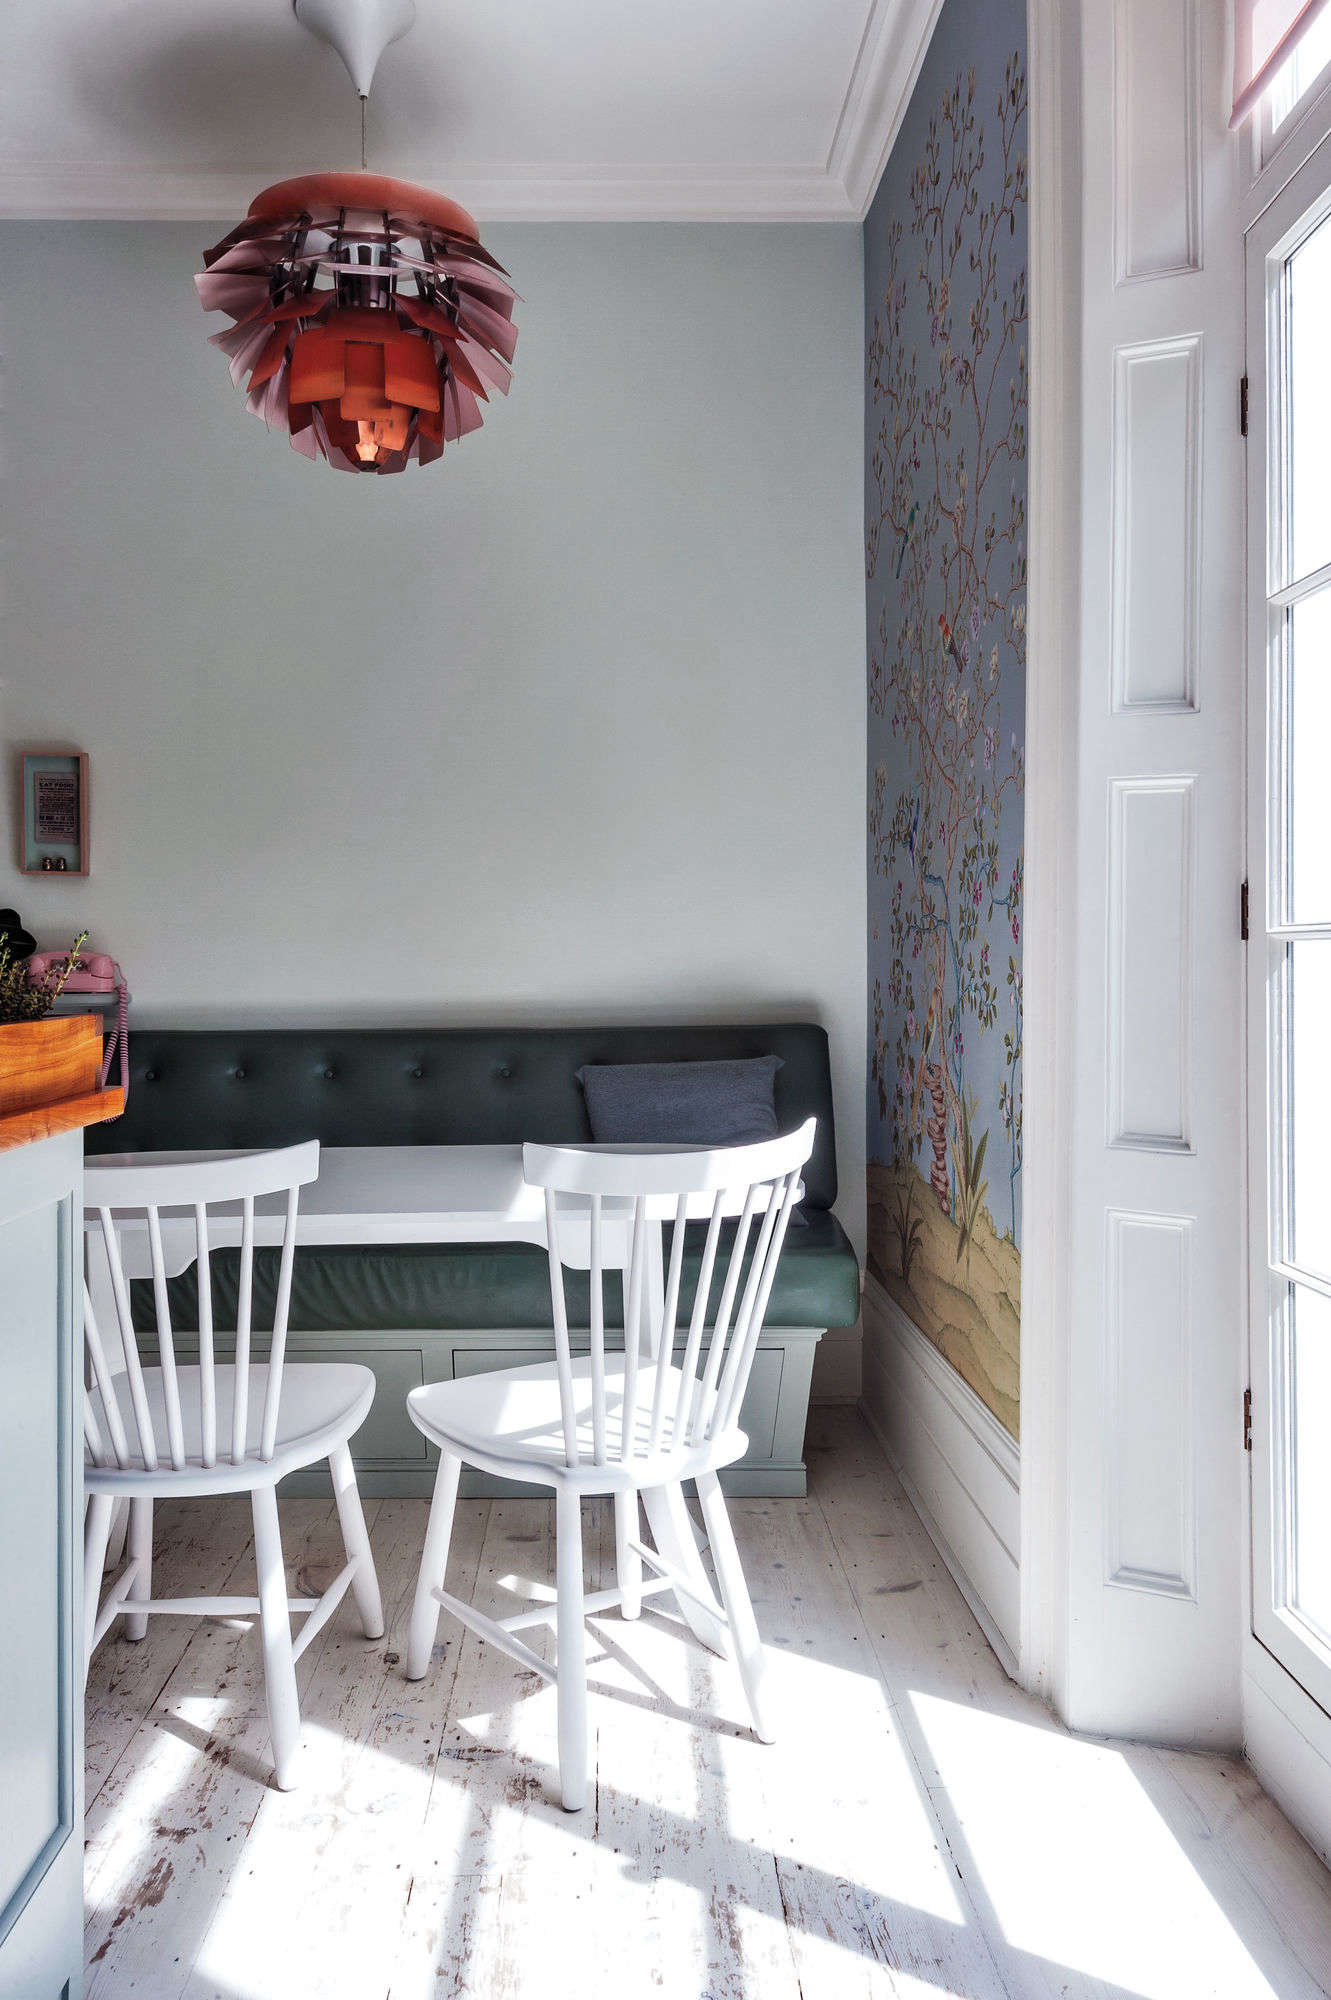 Pale blue walls, Chinoiserie wallpaper, Swedish chairs, and retro accents come together at the breakfast table in the kitchen.Photograph by Matthew Williams for Remodelista: A Manual for the Considered Home.